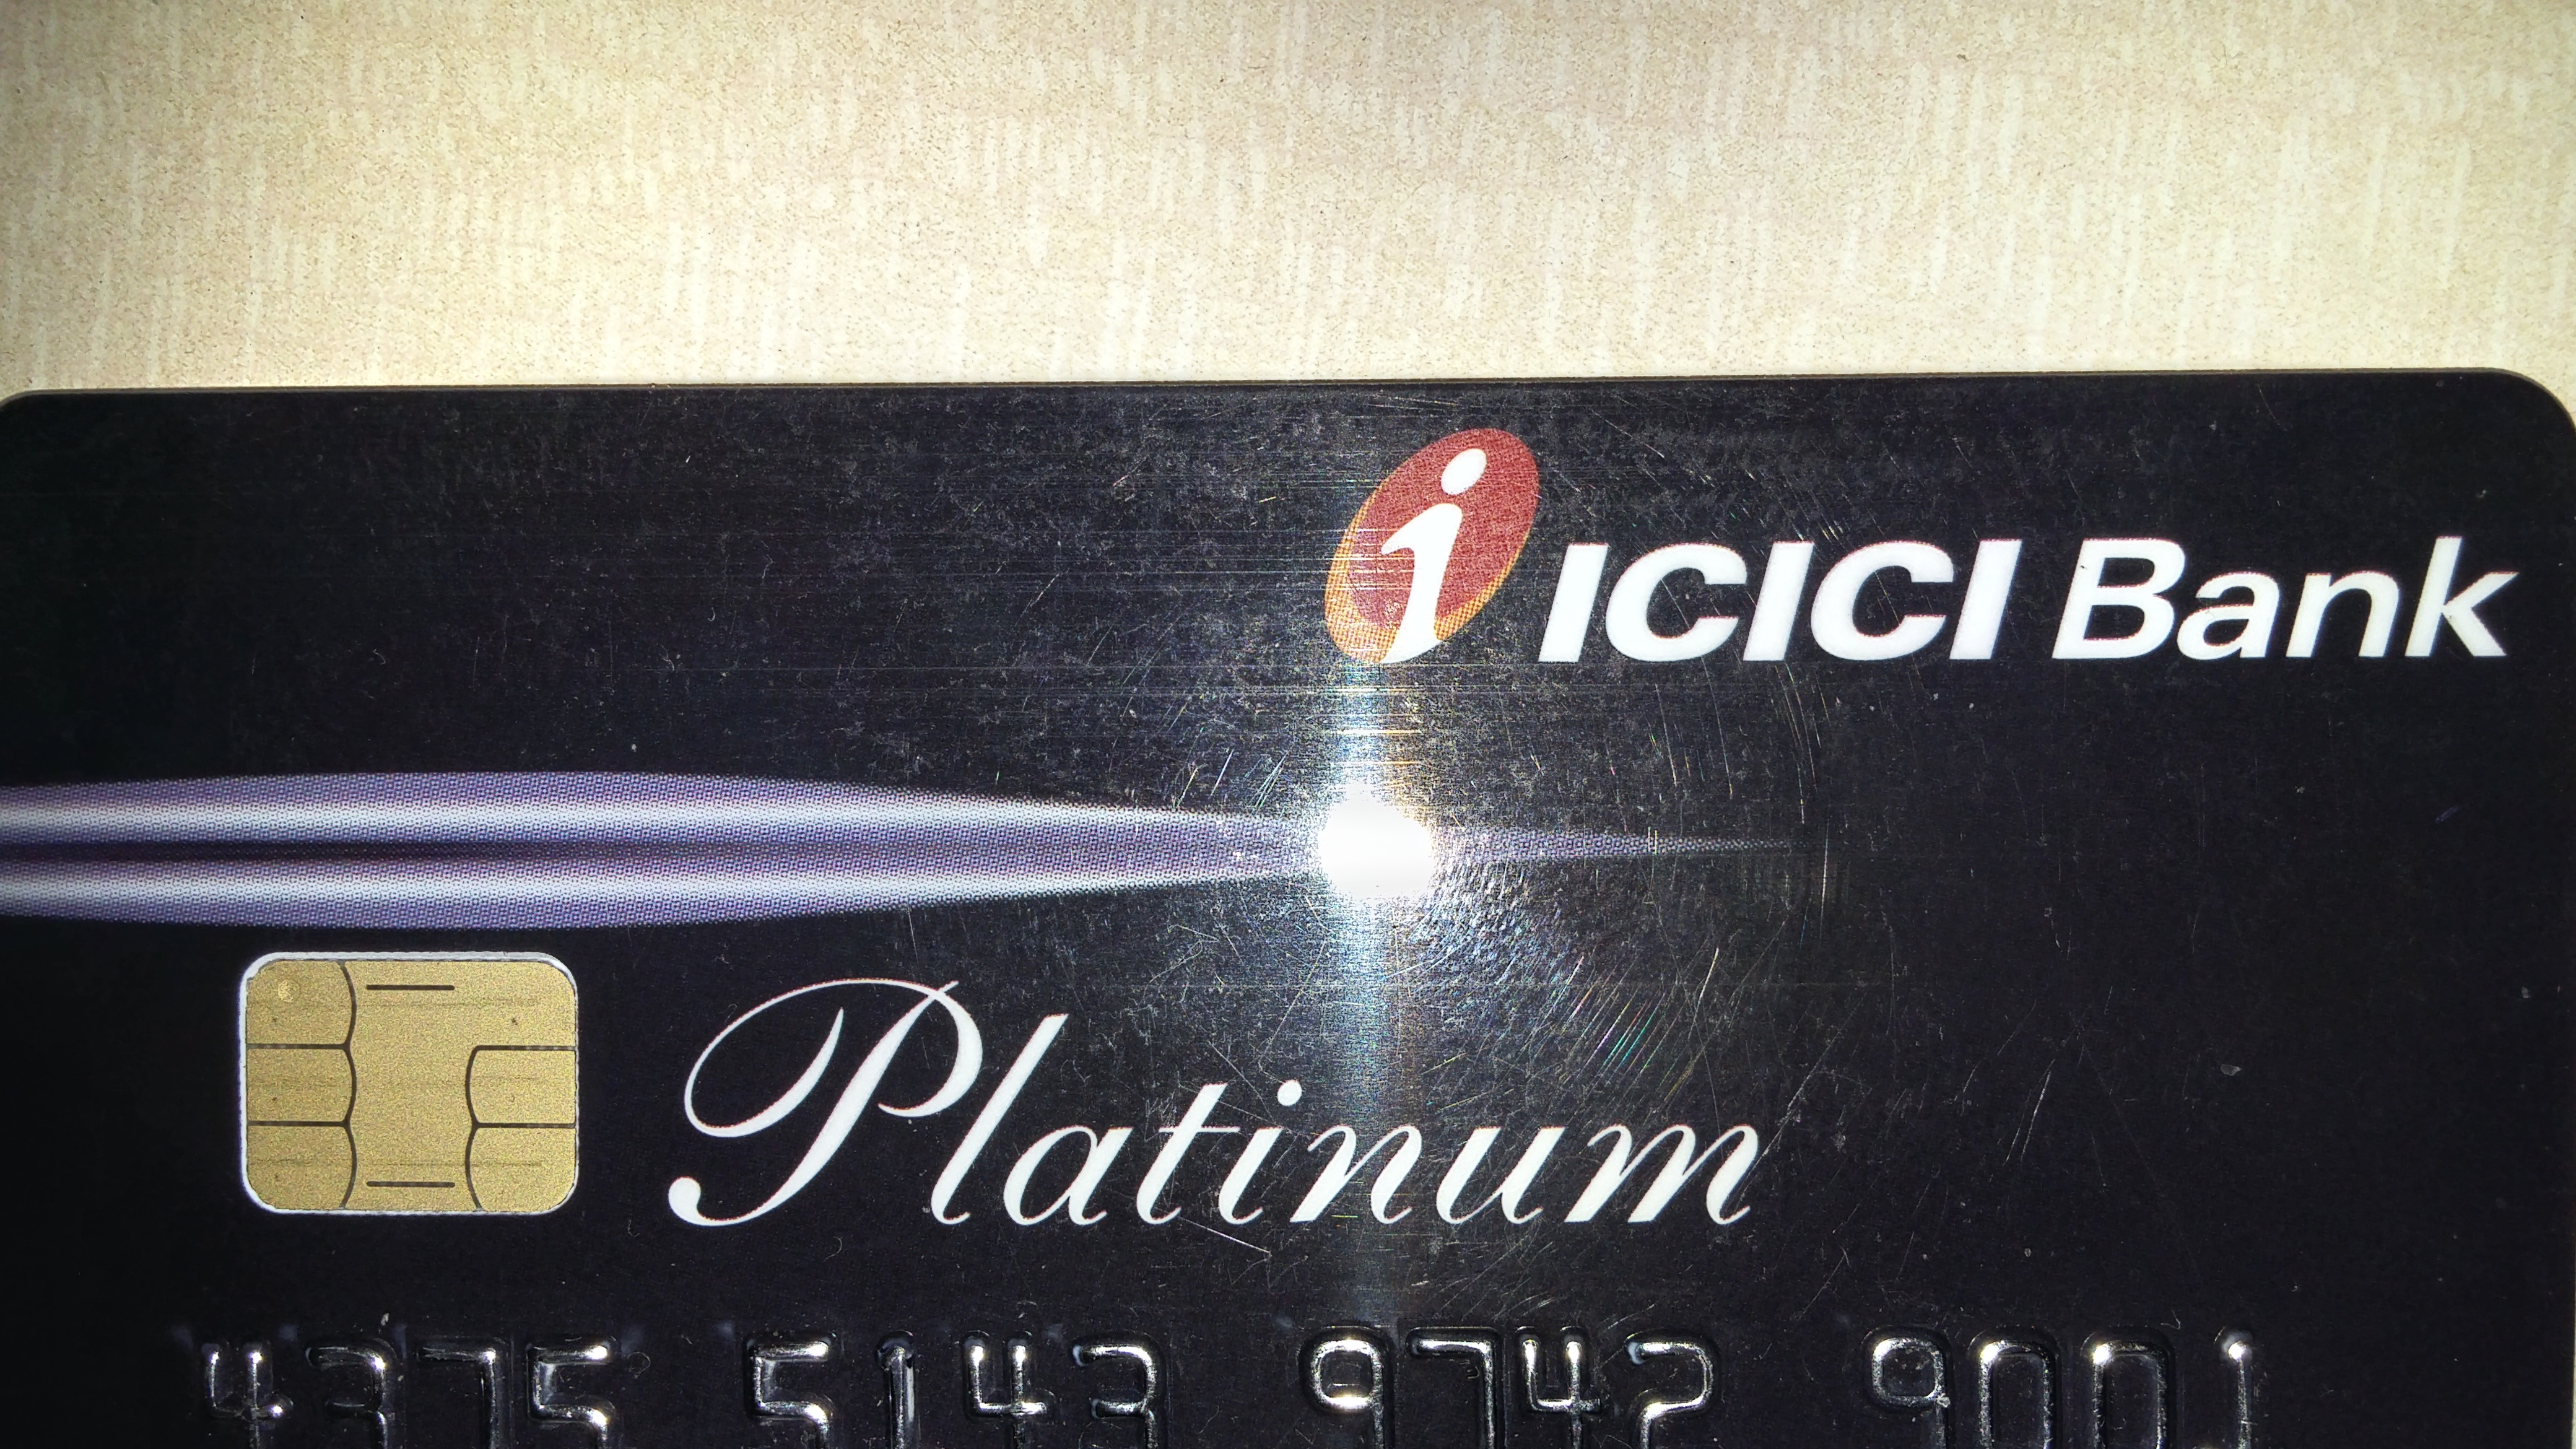 types of credit cards provided by icici bank